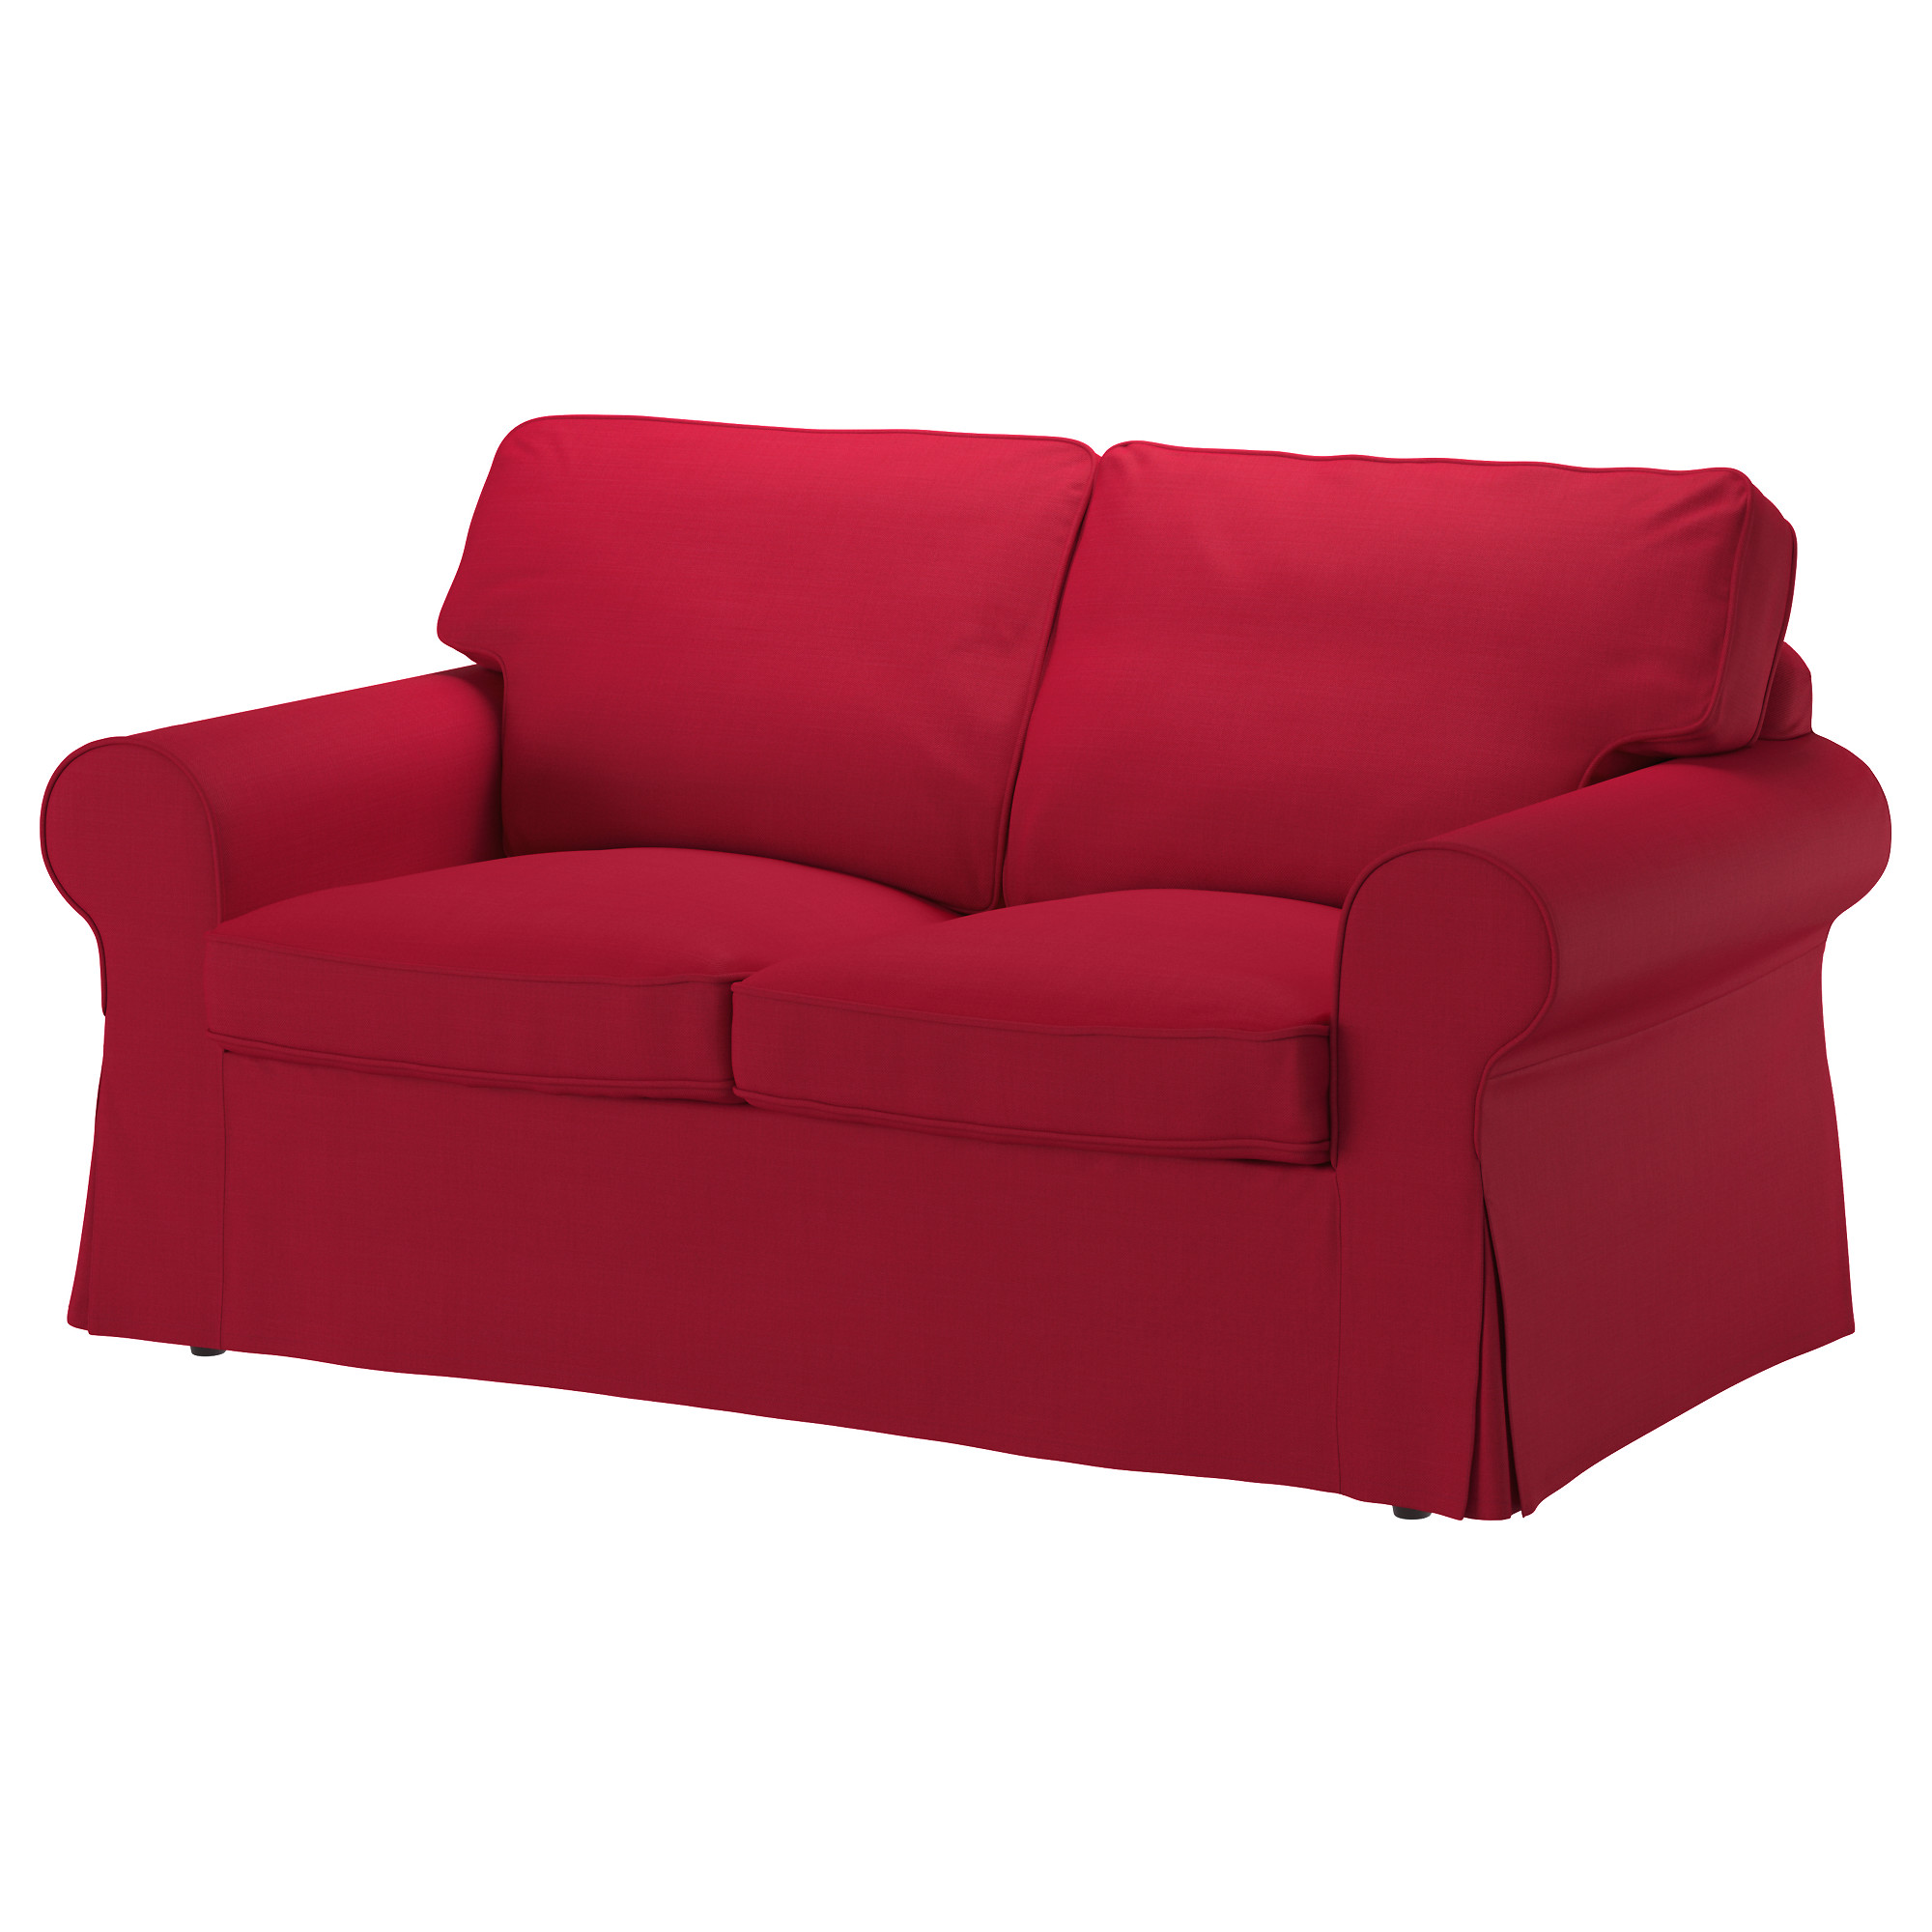 solutions faux lifestyle leather casual futon pd shop convertilbes red